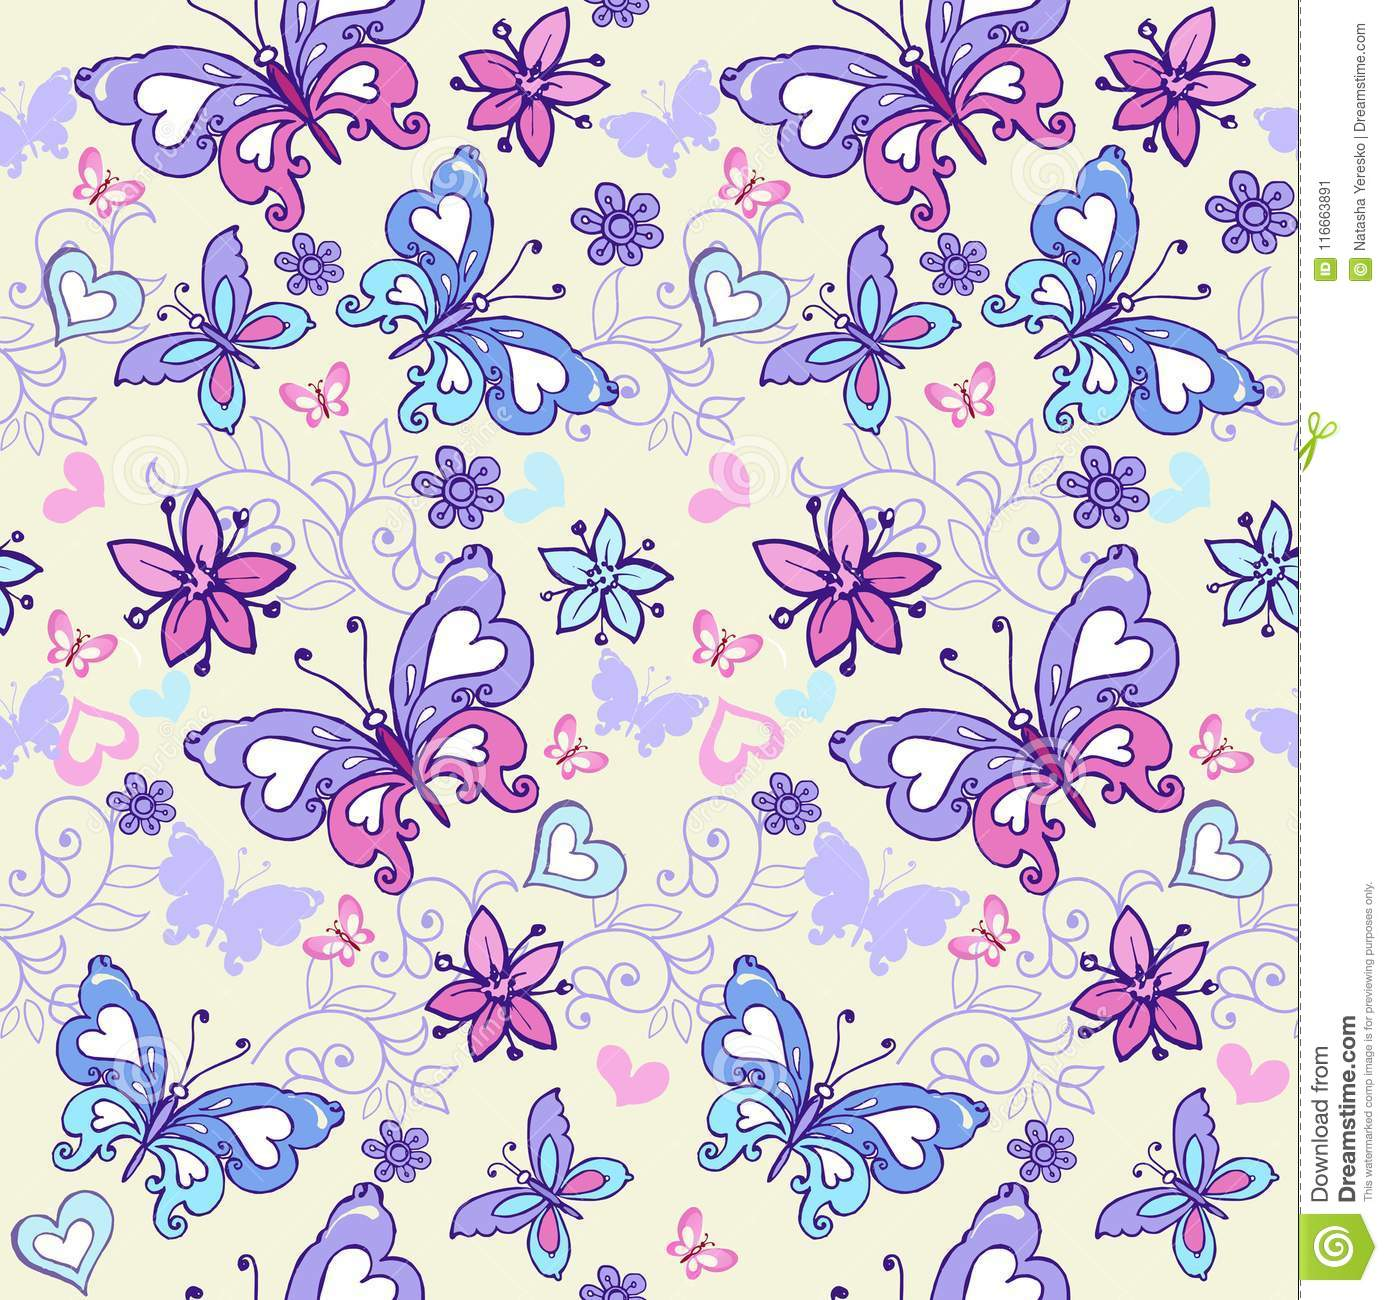 Cute summer seamless pattern with butterflies and hearts. Vintage flowers seamless ornament in blue and pink colors. Decorative or